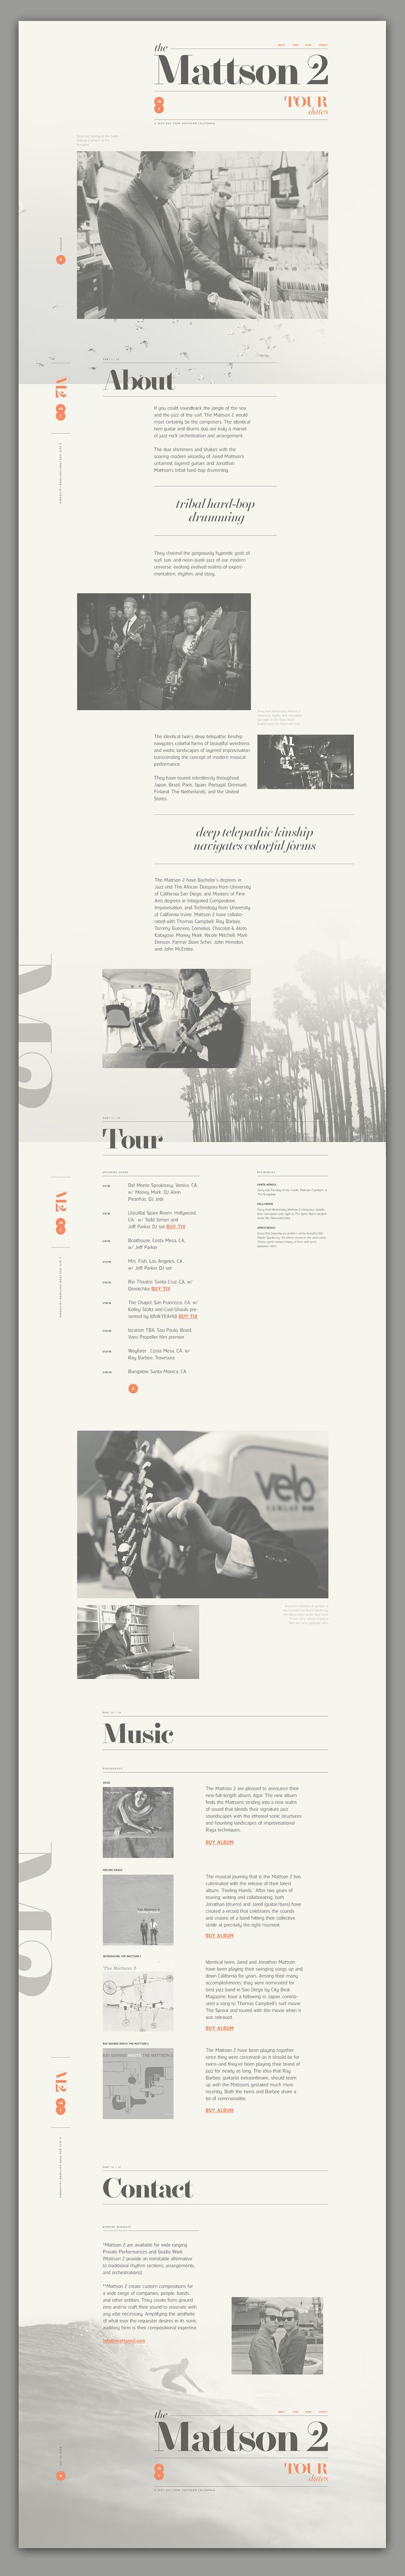 Web / The Mattson 2 Concept on Behance